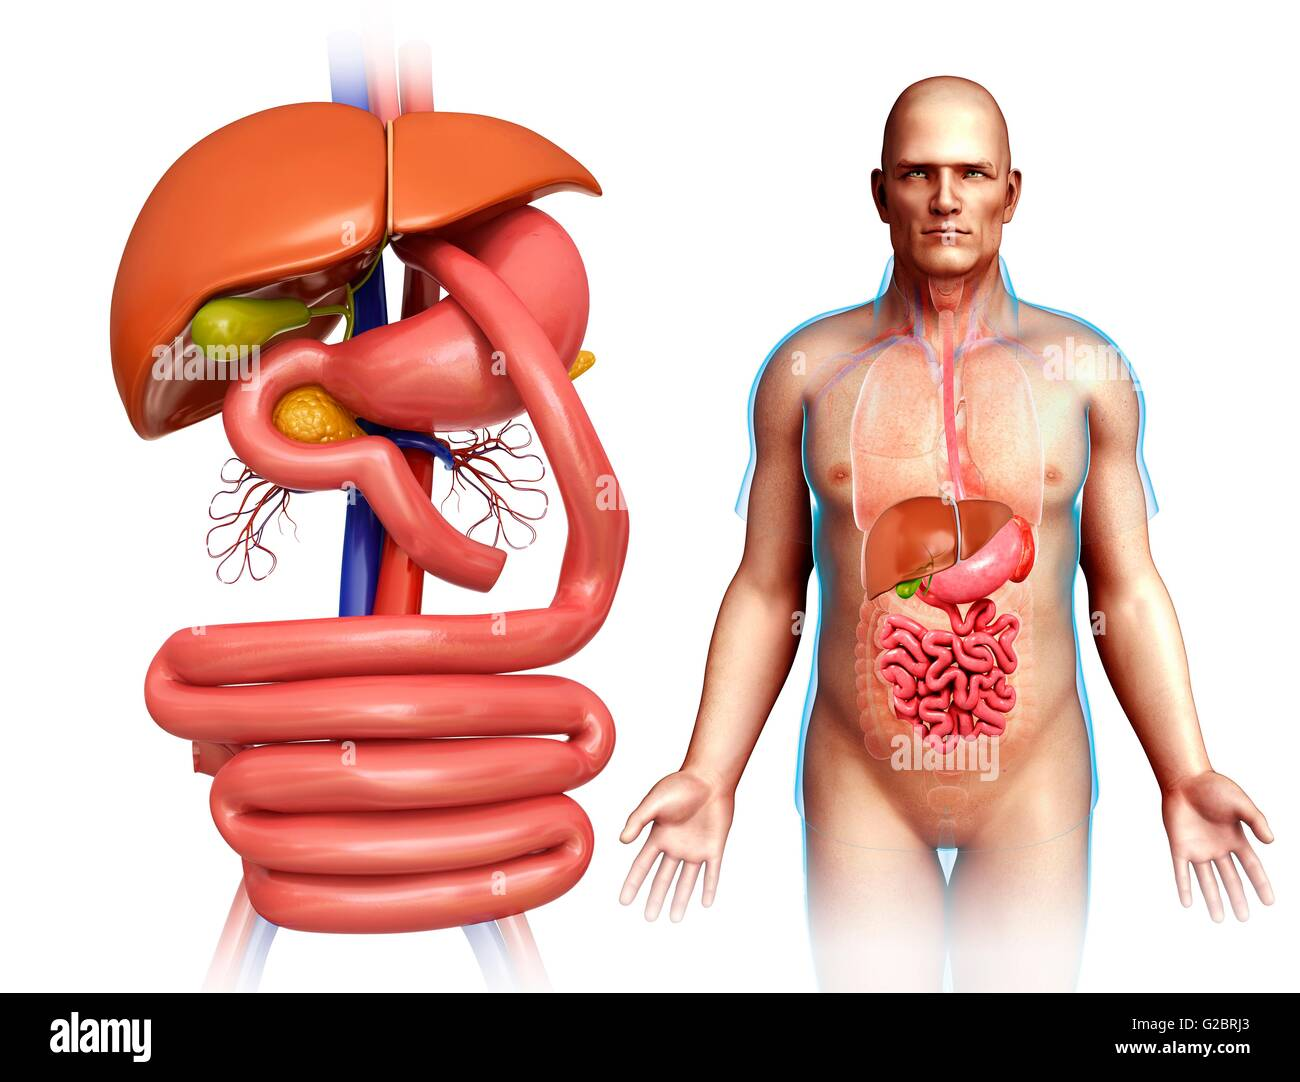 Gastric Bypass Illustration Stock Photos & Gastric Bypass ...